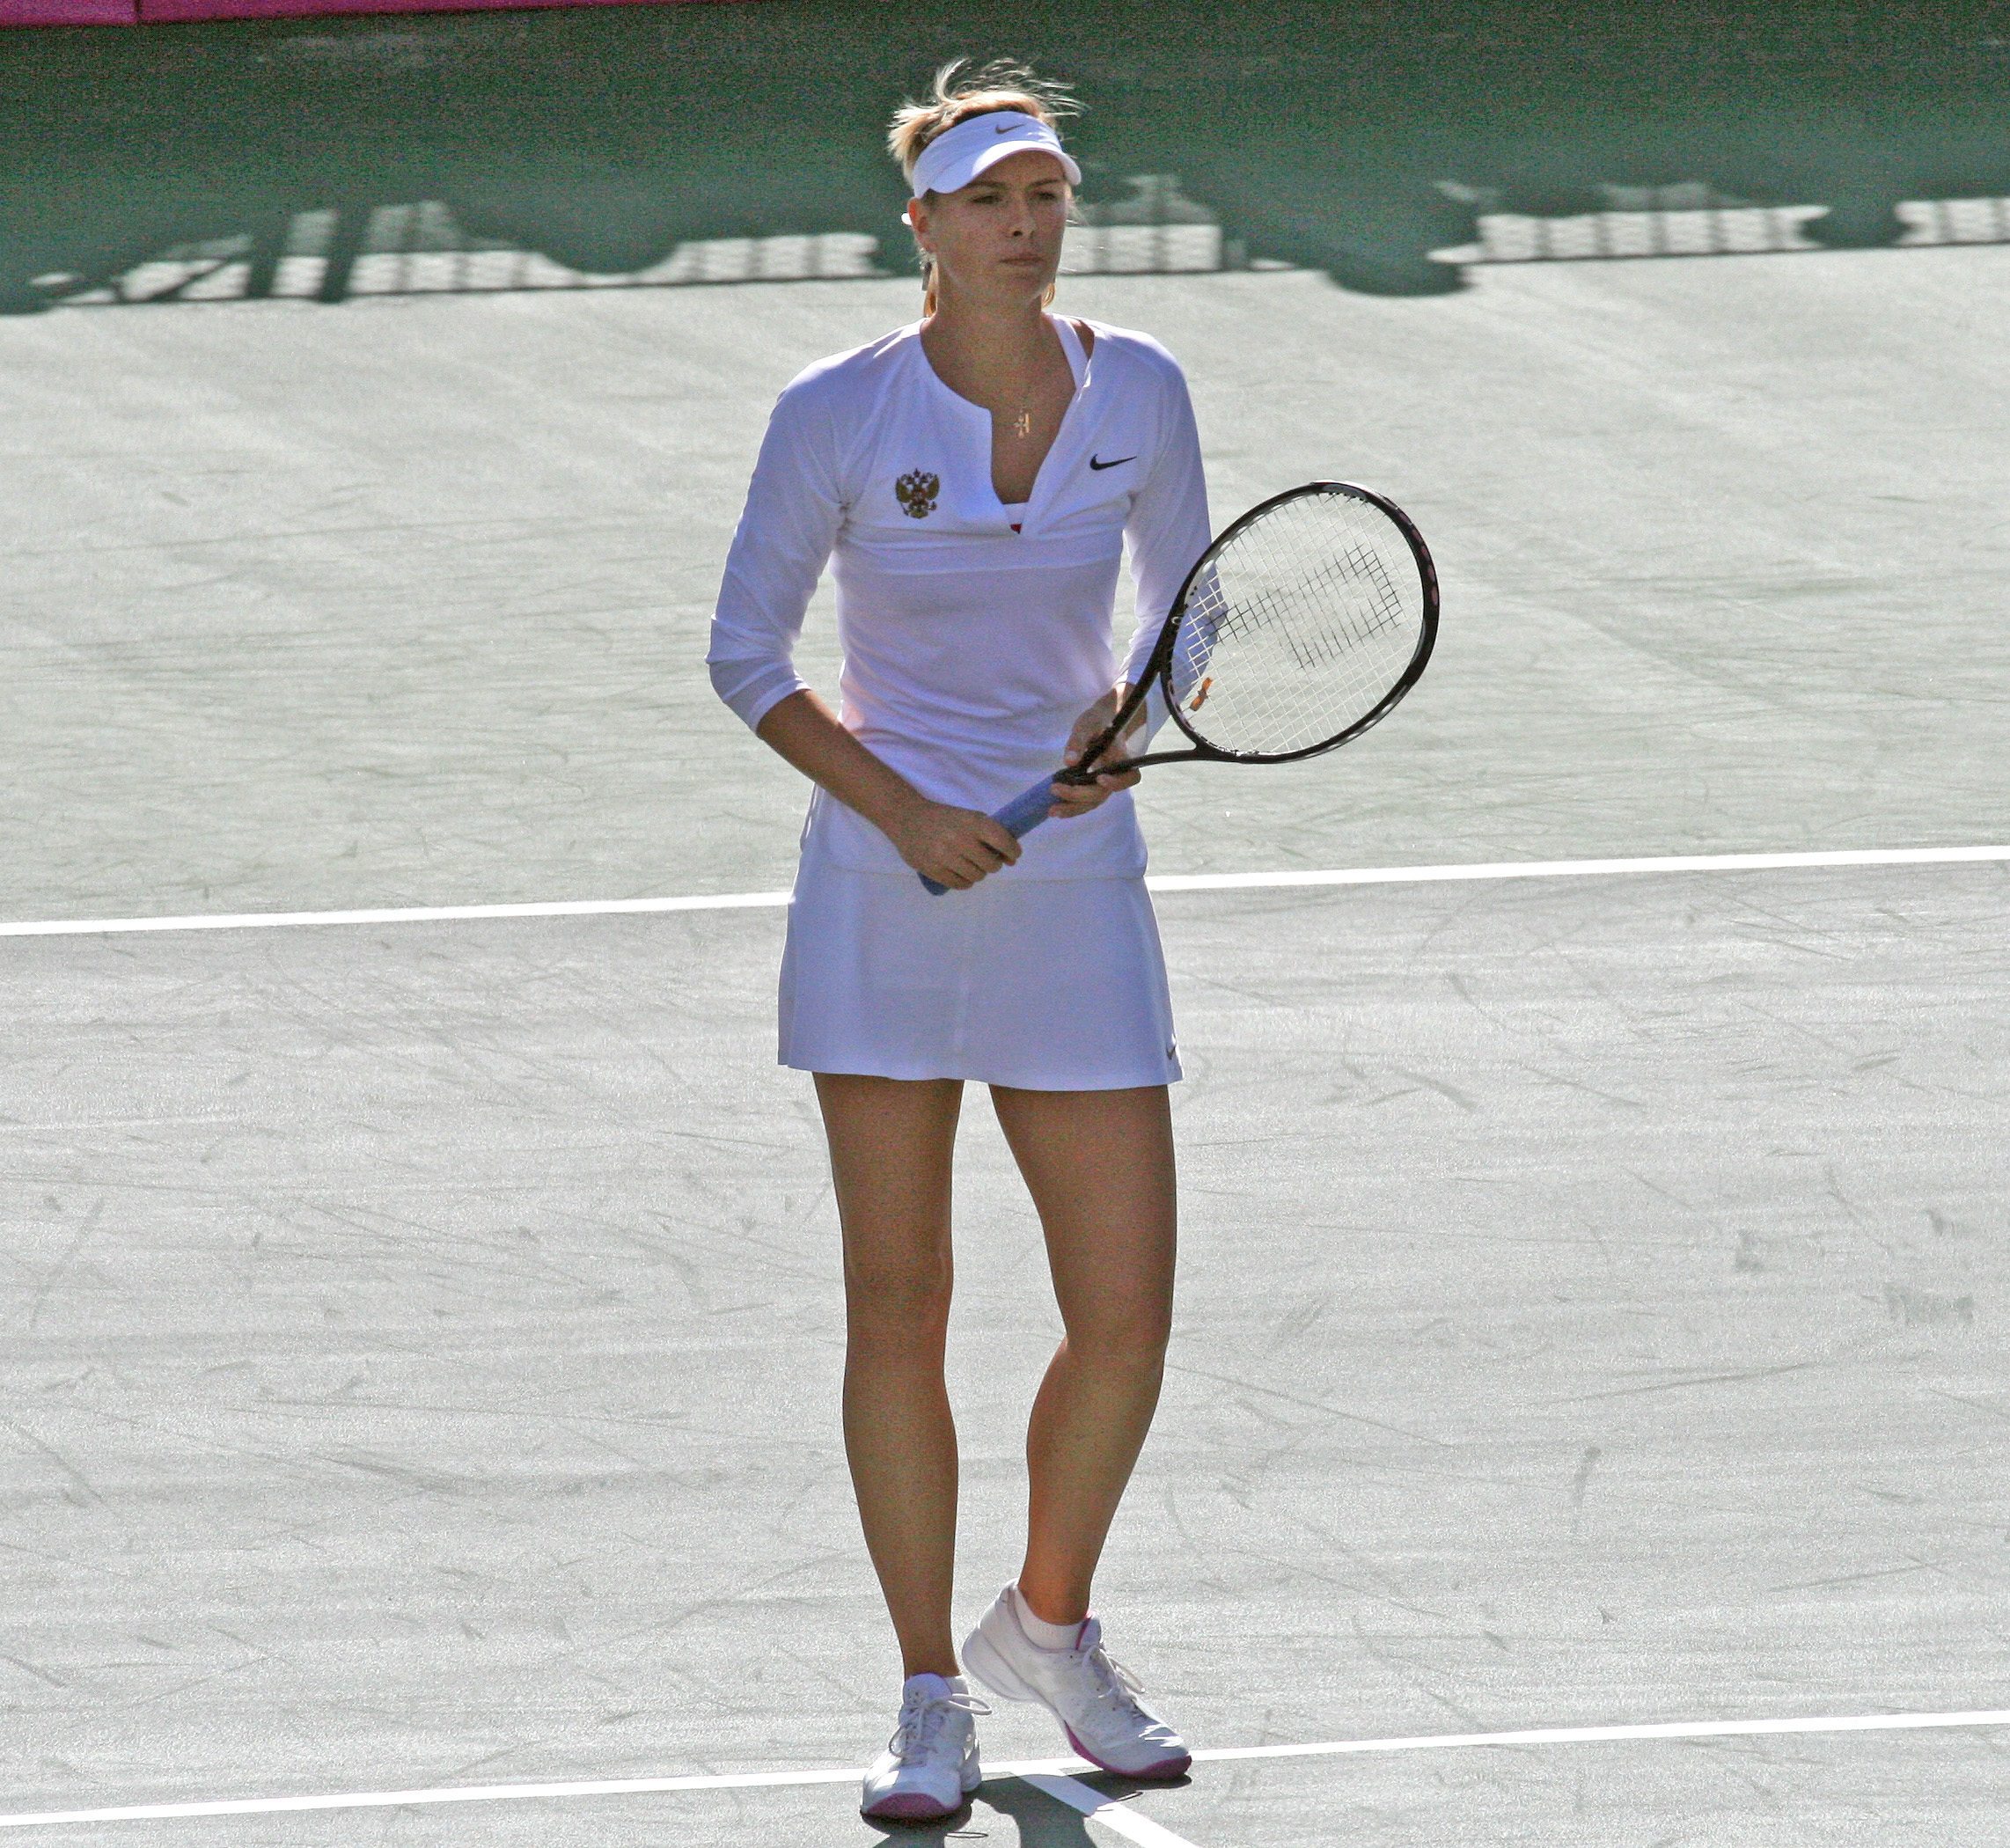 Fed Cup participation